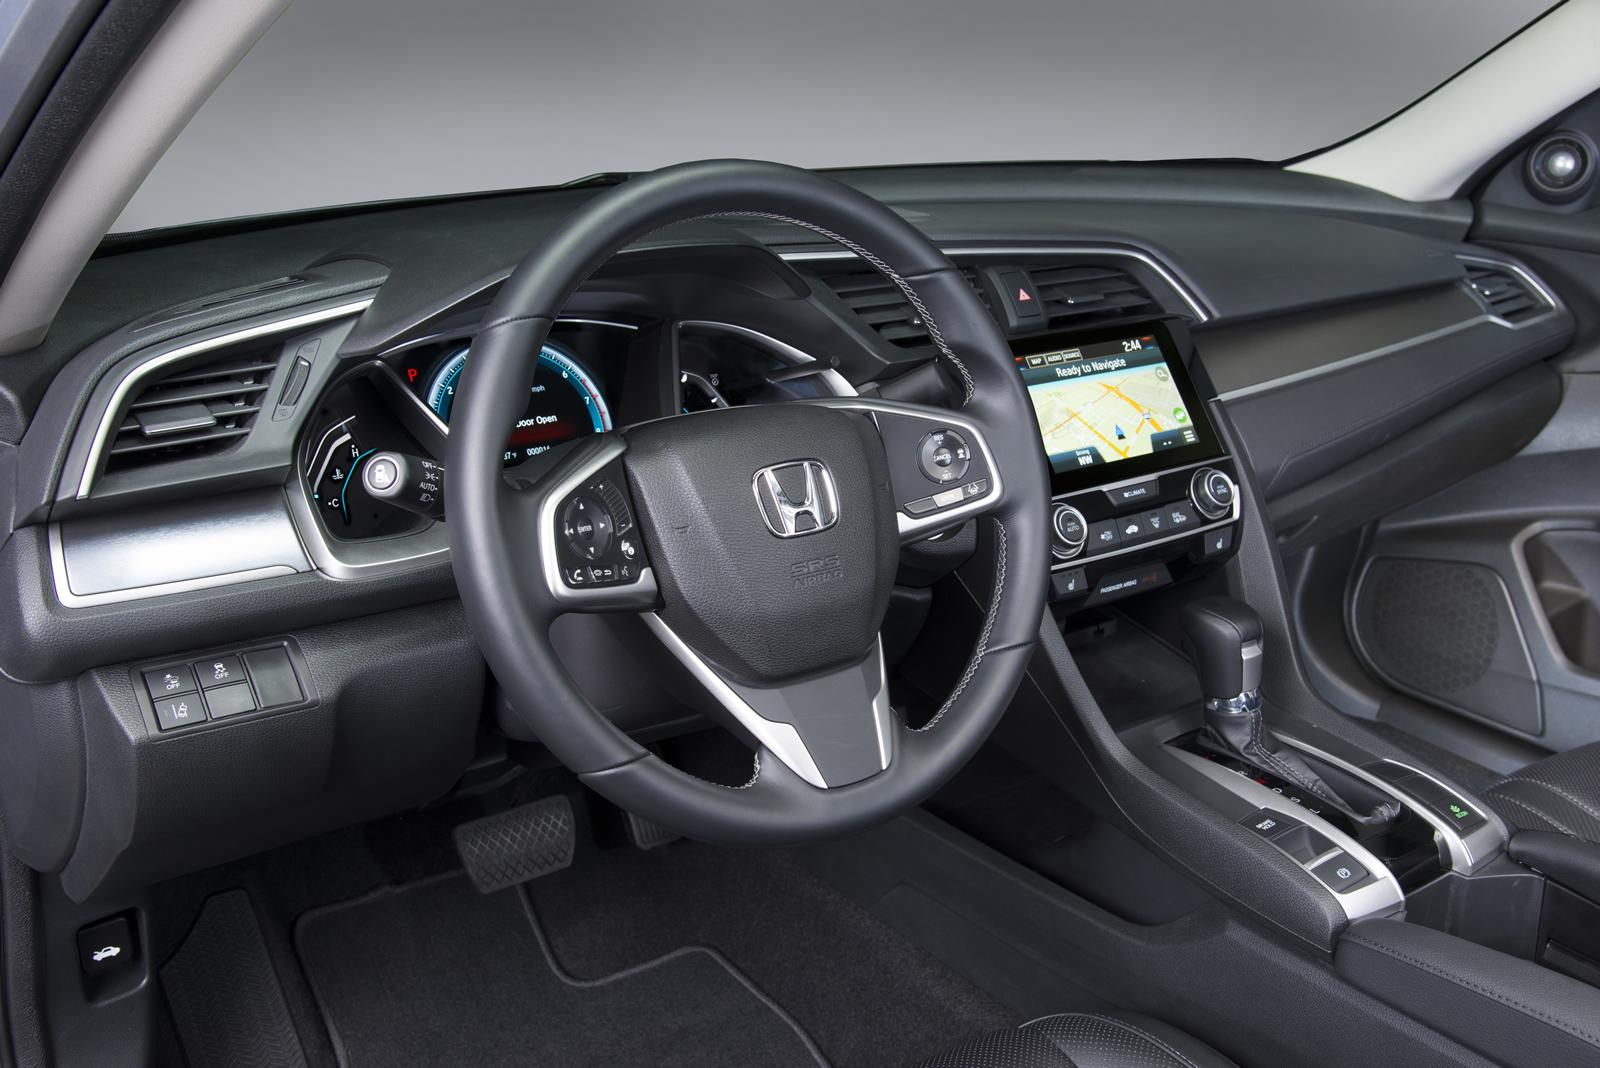 2018 Honda Civic Priced $100 Higher Than 2017 Model ...